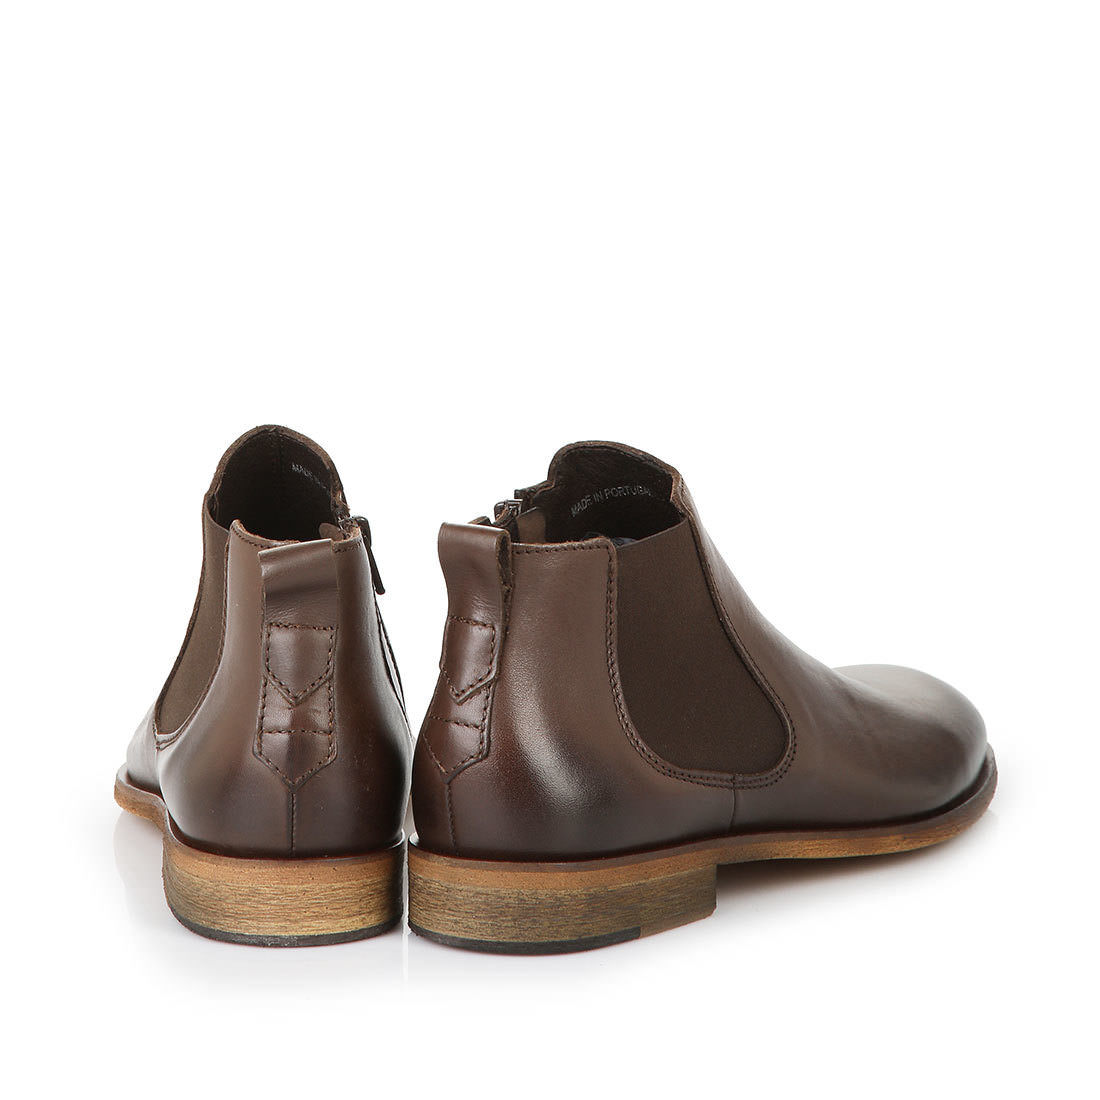 men s chelsea boots in brown buy online in buffalo online shop buffalo. Black Bedroom Furniture Sets. Home Design Ideas